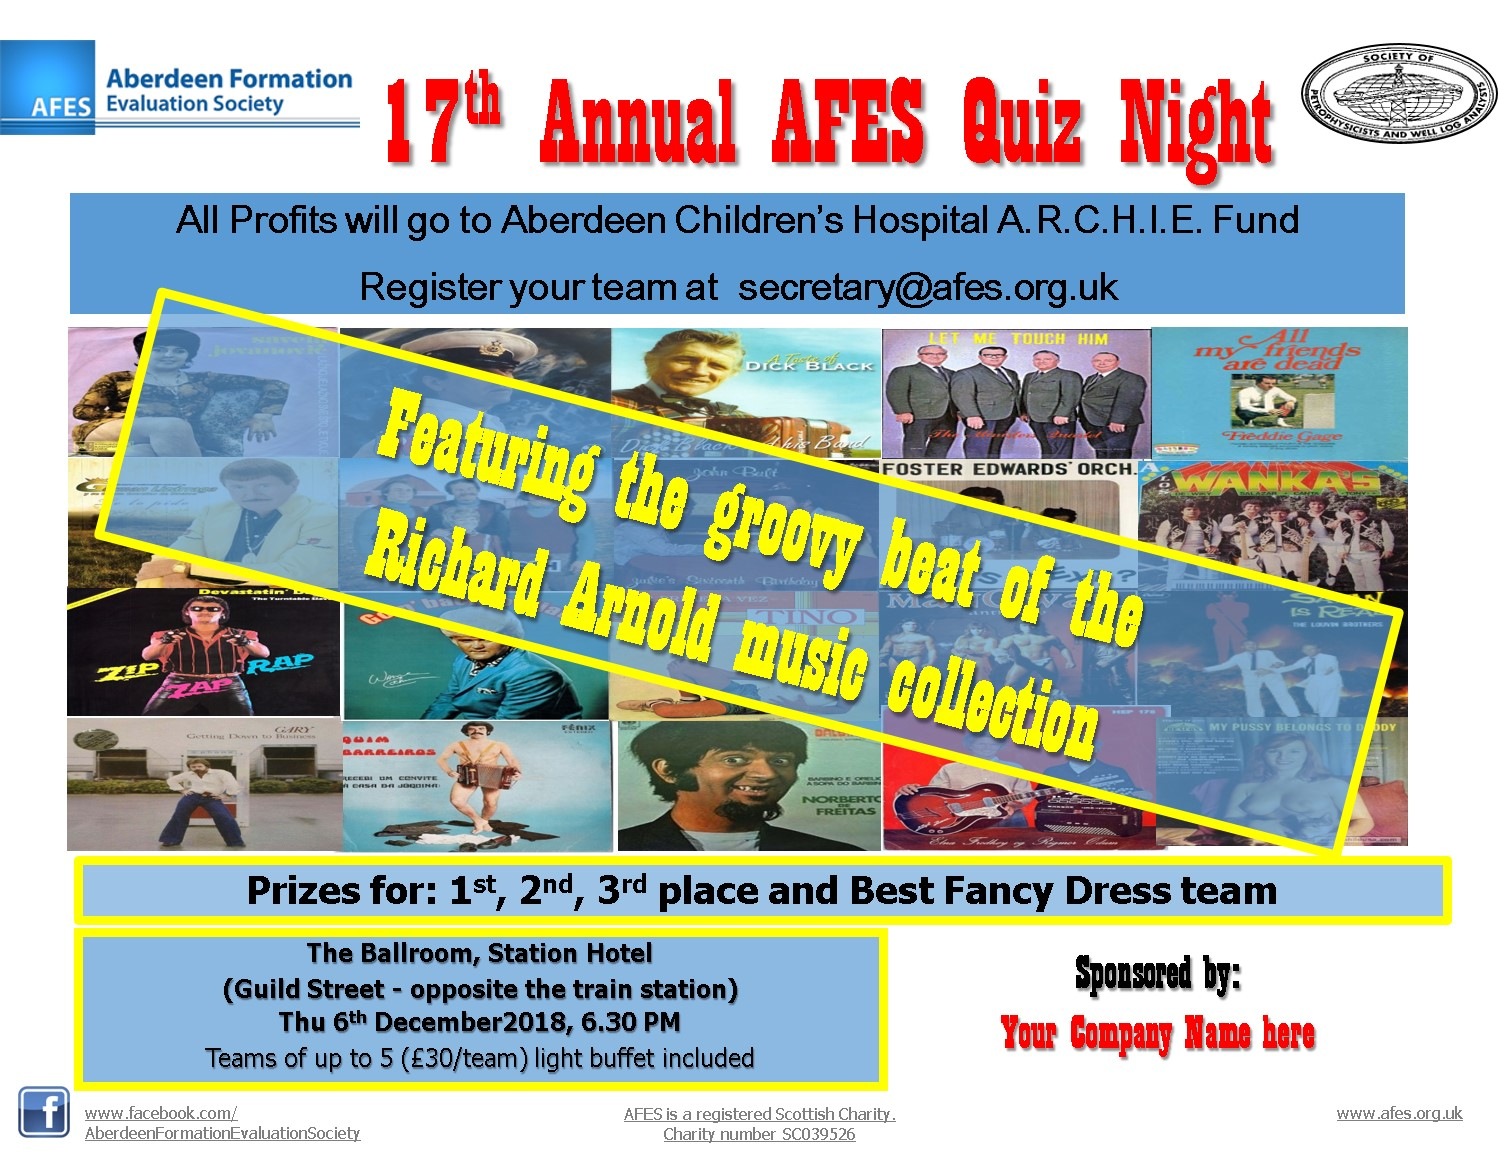 17th Annual AFES Quiz Night – 6th December 2018